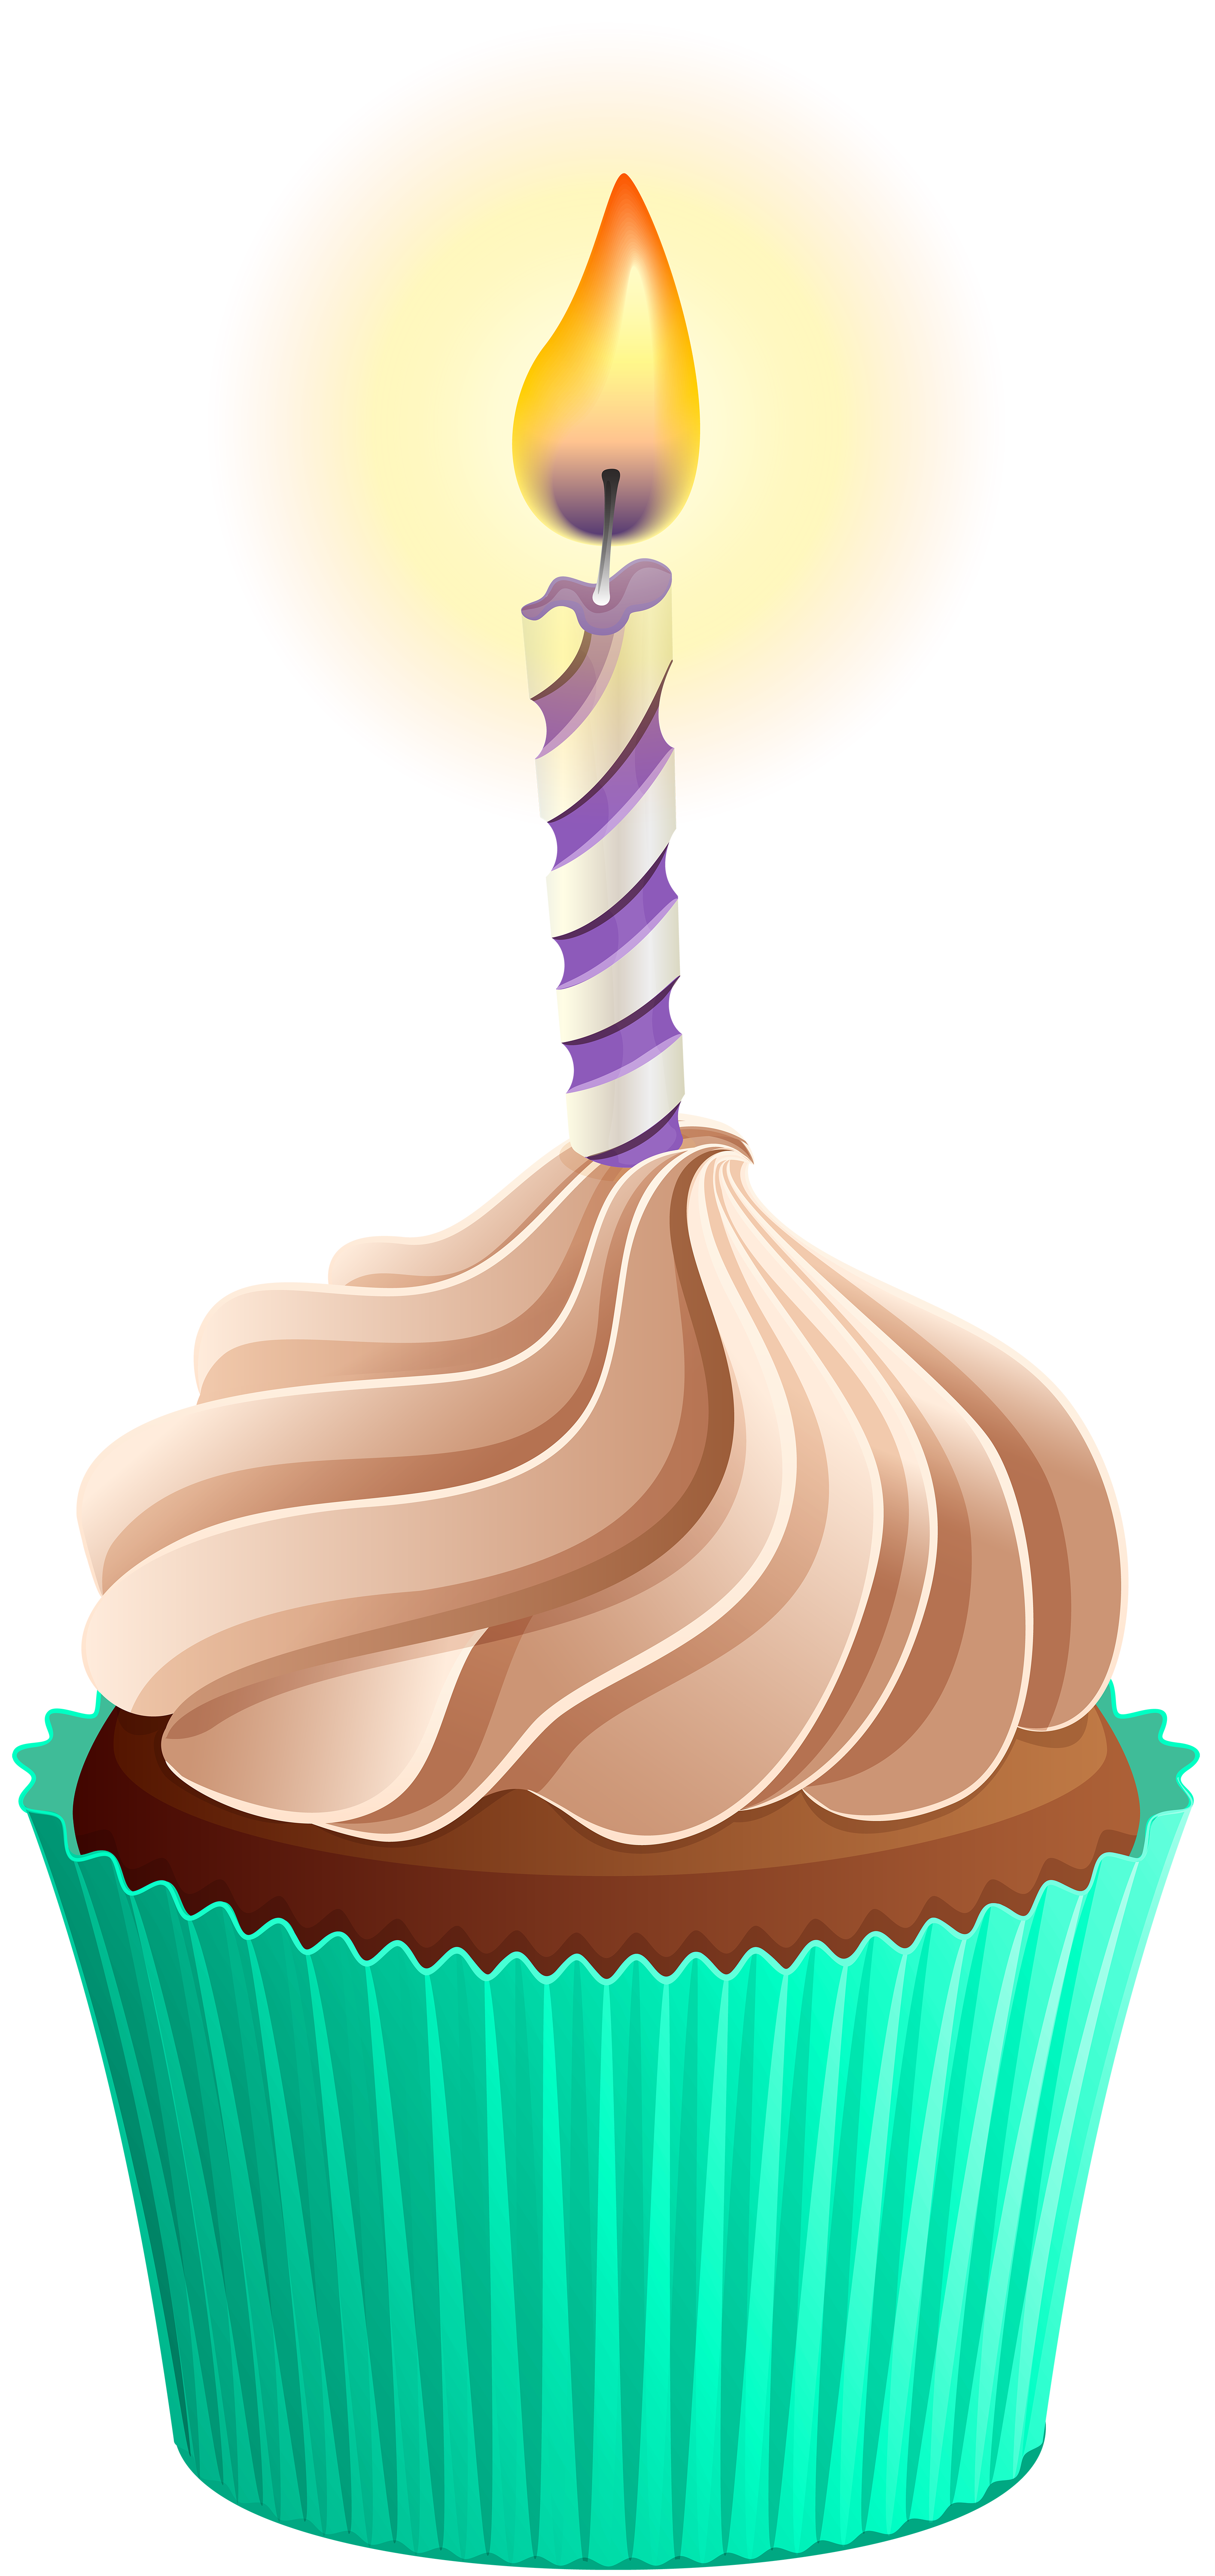 Birthday cupcake png. Clip art image gallery